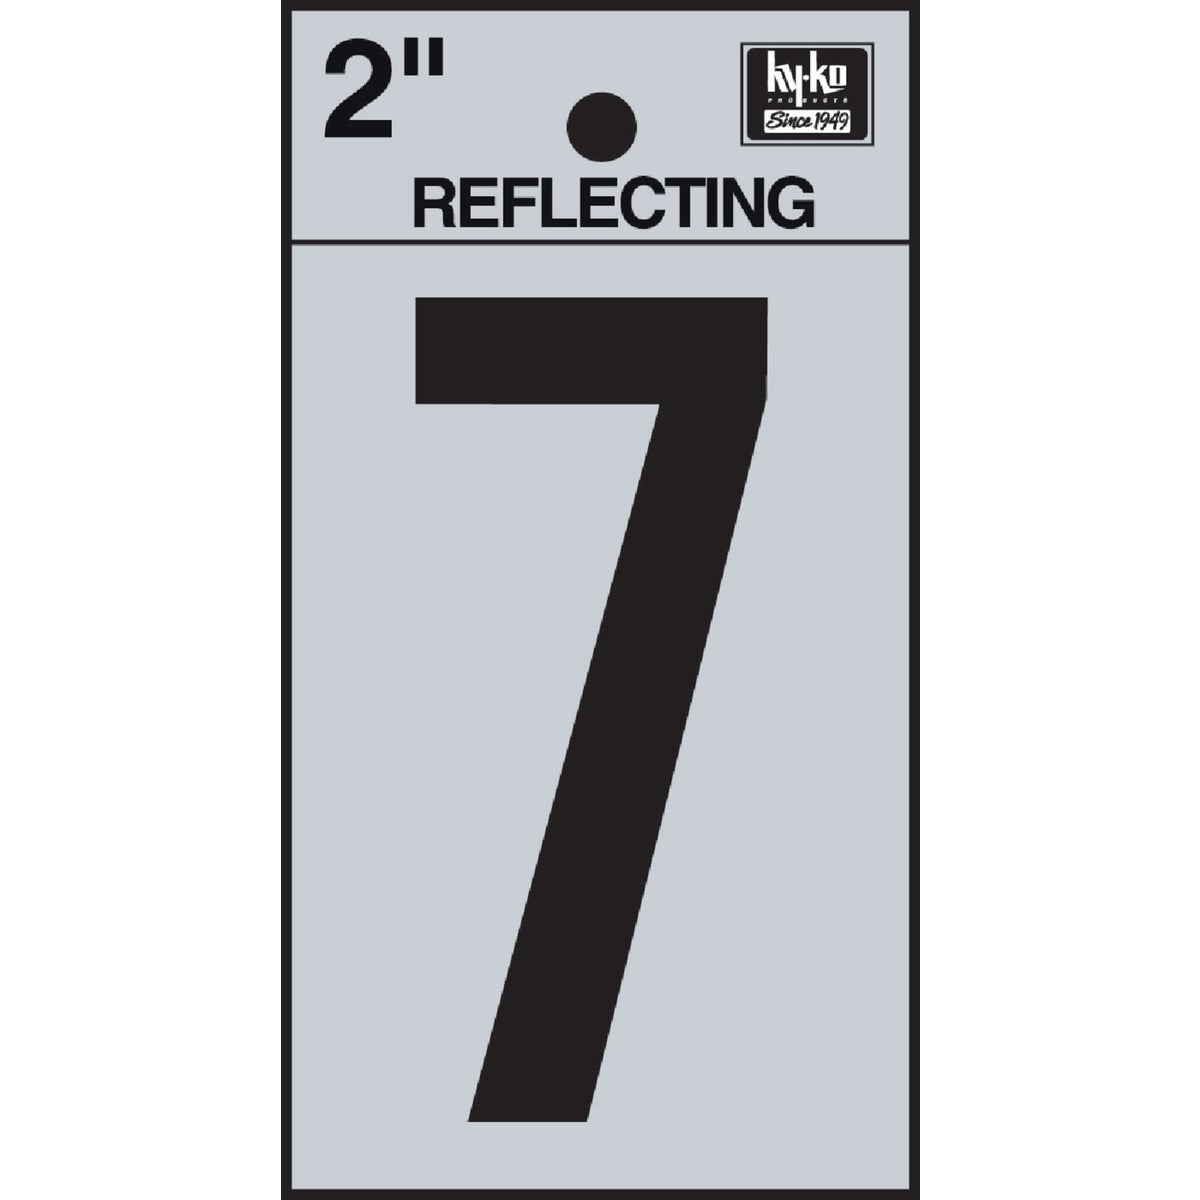 "2"" REFLECT NUMBER 7 - RV-25/7 by Hy Ko Prods Co"